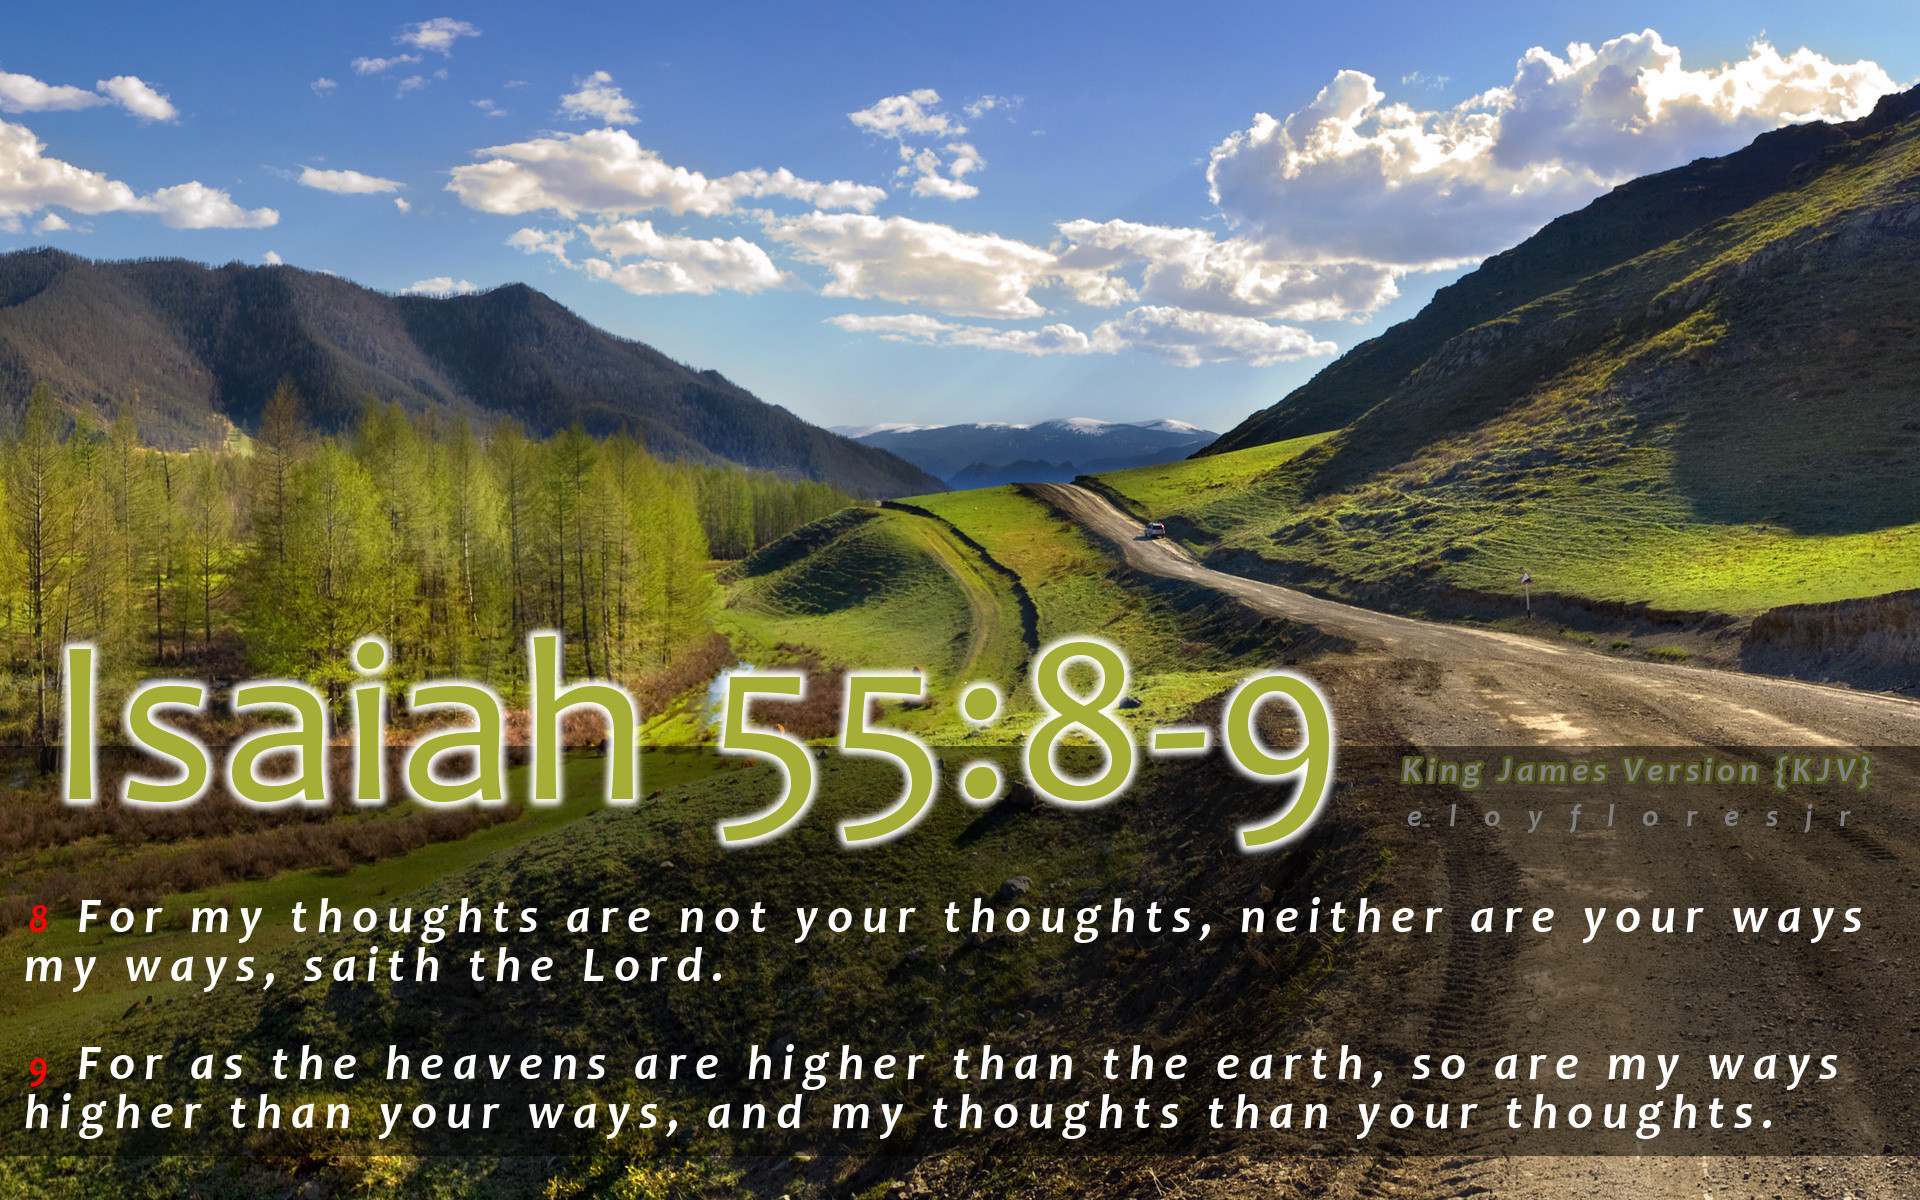 1920x1200 Kjv Bible Verse Wallpaper New isaiah 55 8 9 Kjv Bible Verse Background Hd  Wallpaper